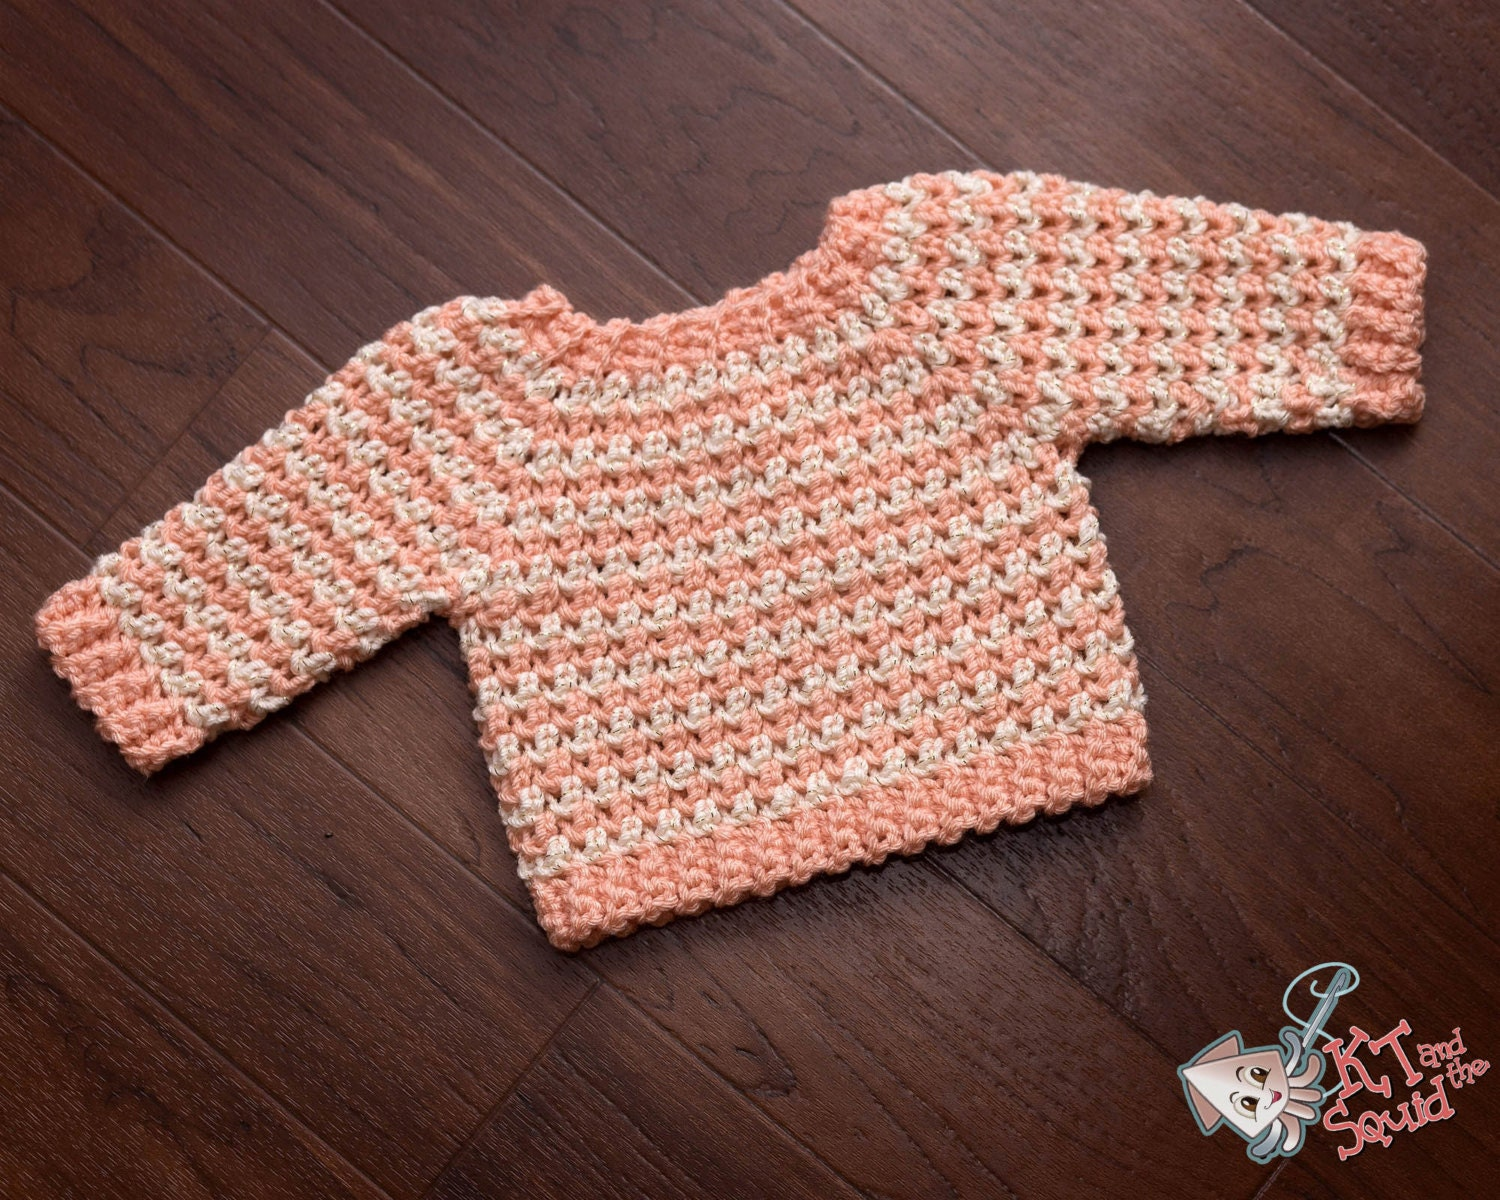 Infant crochet sweater pattrn Top down baby sweater long